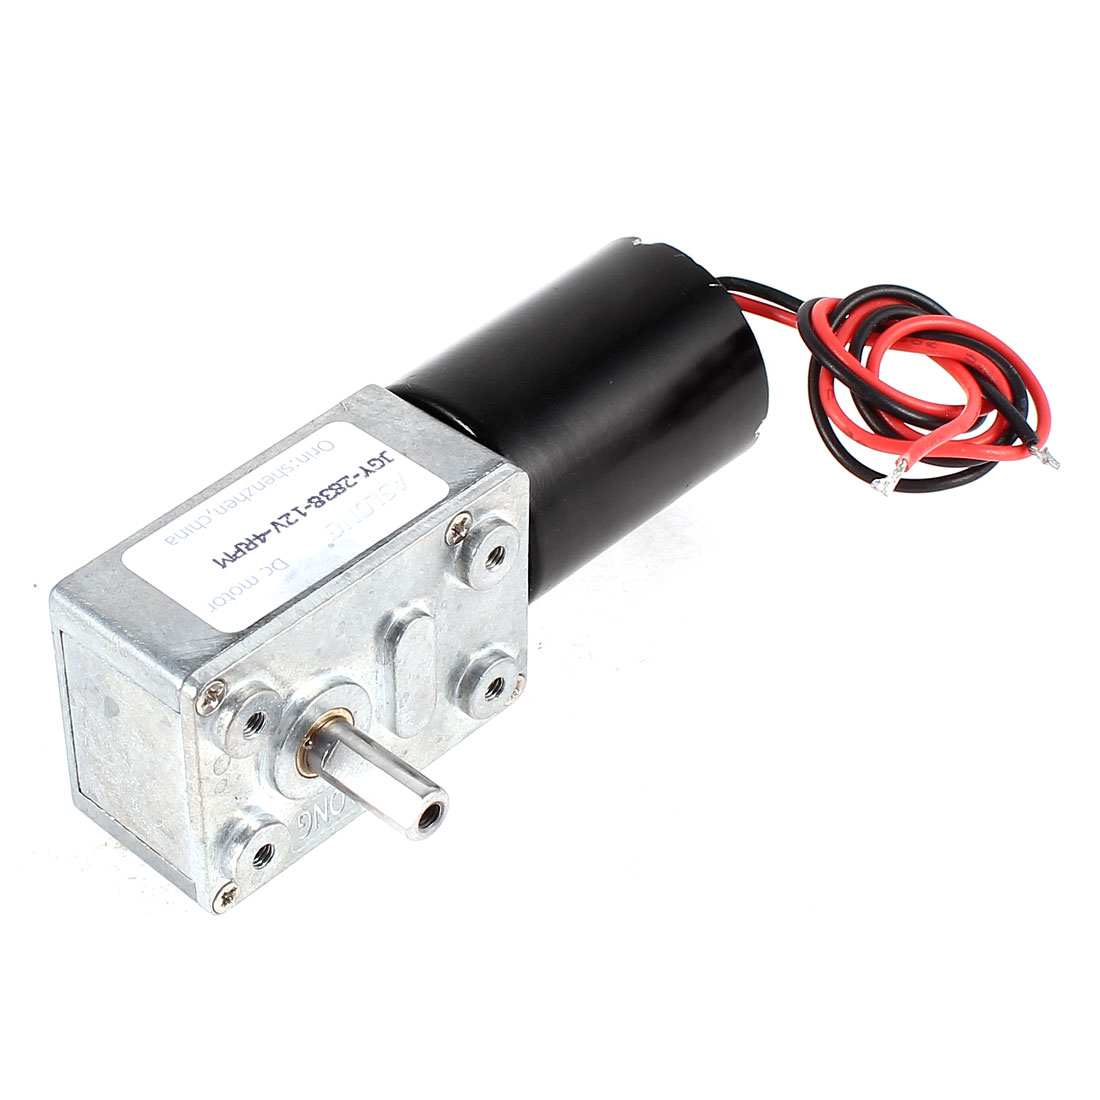 DC 12V 4RPM 6mm Dia Shaft Turbine Worm Geared Box Speed Reducing Brushless Motor